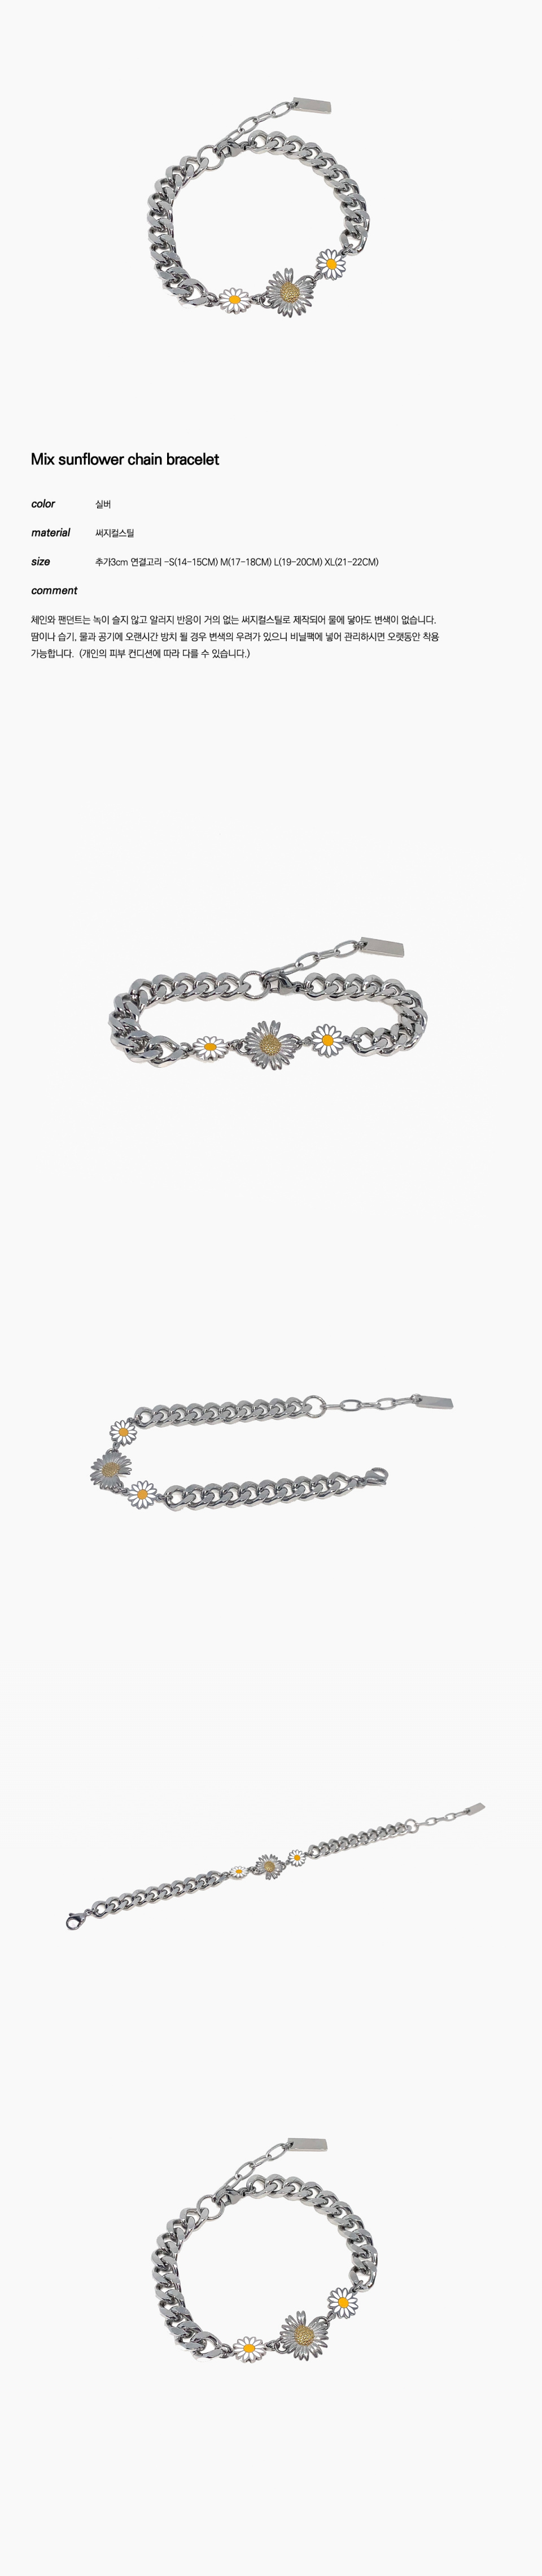 셉텐벌5(SEPTEMBER5) Mix  sunflower chain bracelet